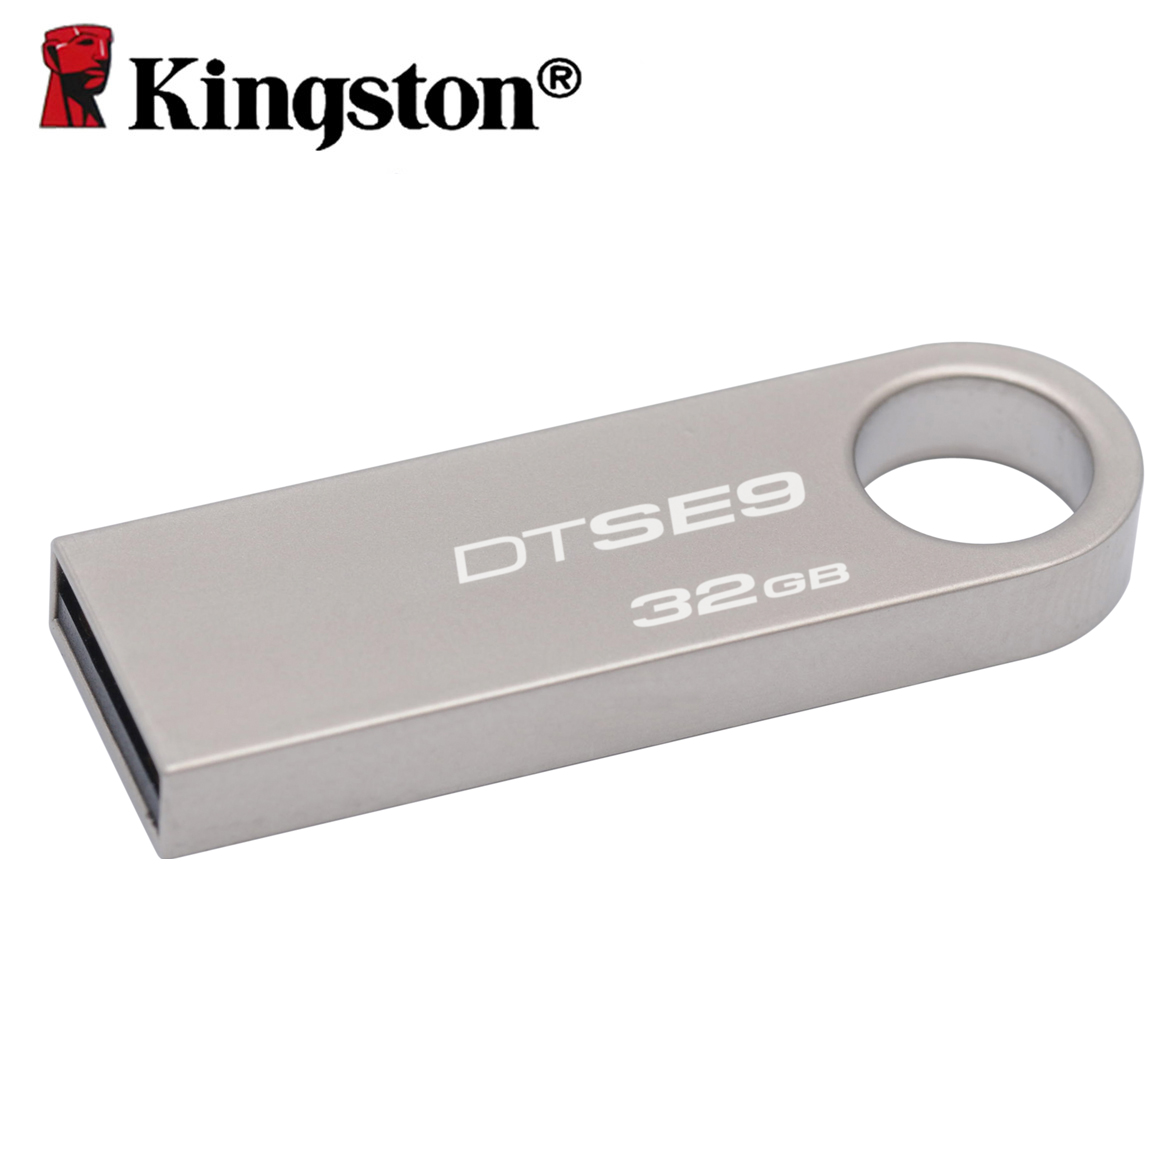 Kingston USB 2.0 mini key flash drive 8gb 16gb 32gb metal casing pen drive memory otg stick USB flash disk DTSE9 usb flash drive 8gb kingston datatraveler locker g3 dtlpg3 8gb